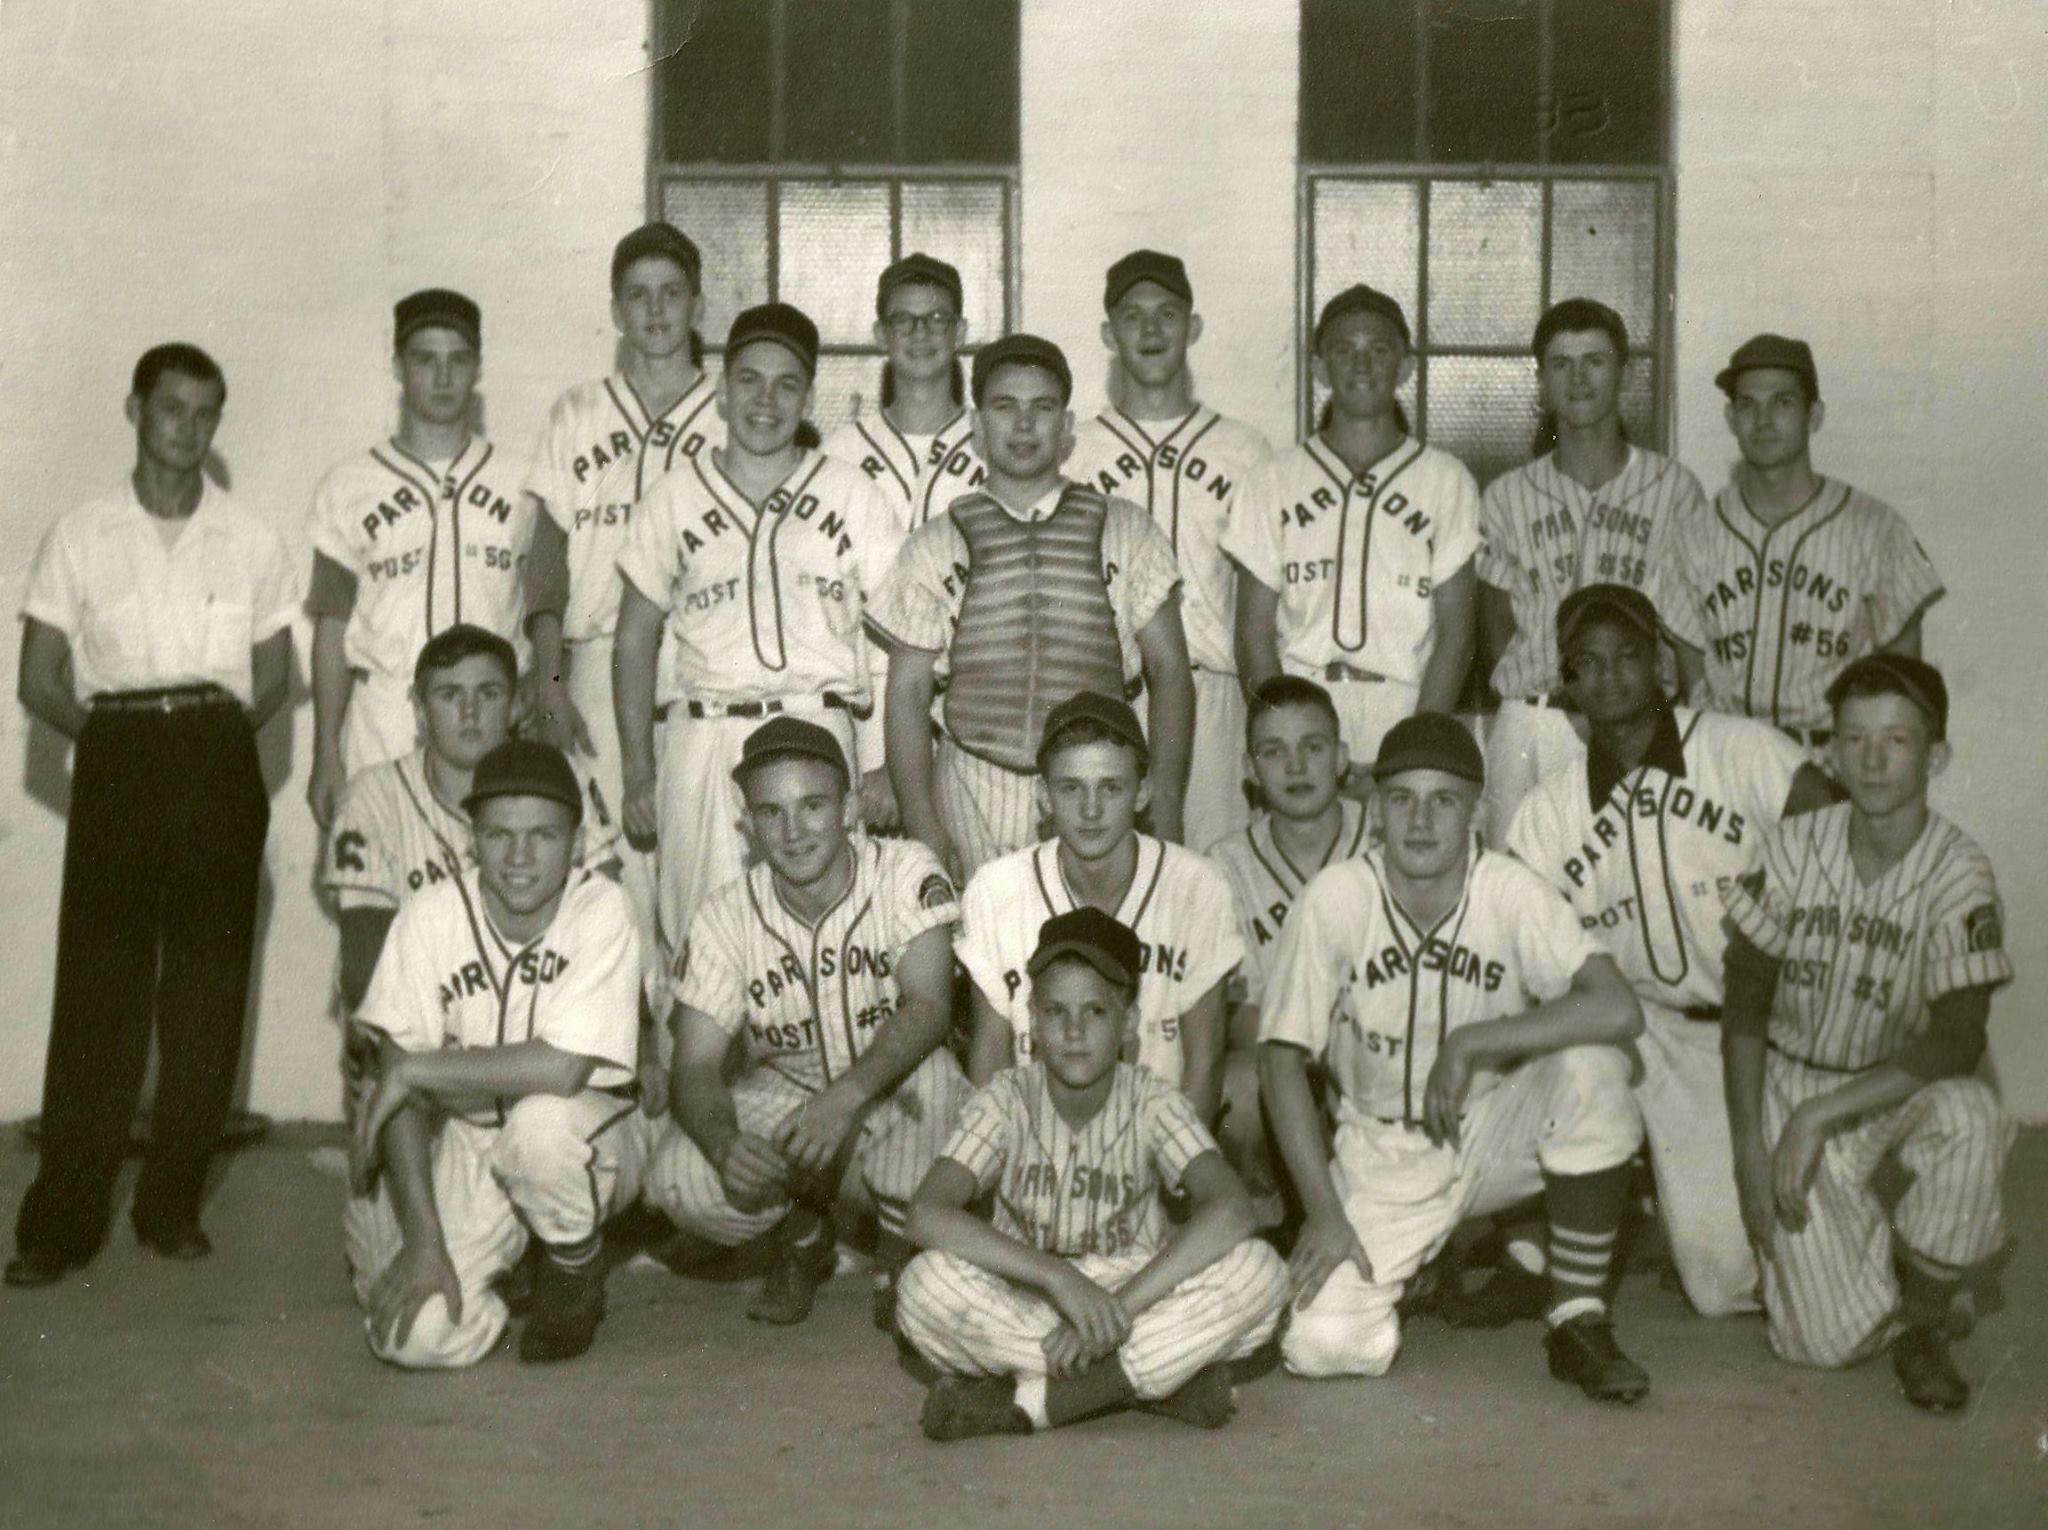 #43 PARSONS 1956 AMERICAN LEGION CHAMPIONSHIP BASEBALL TEAM - THE ST. LOUIS CARDINALS IN PARSONS KANSAS IN 1918